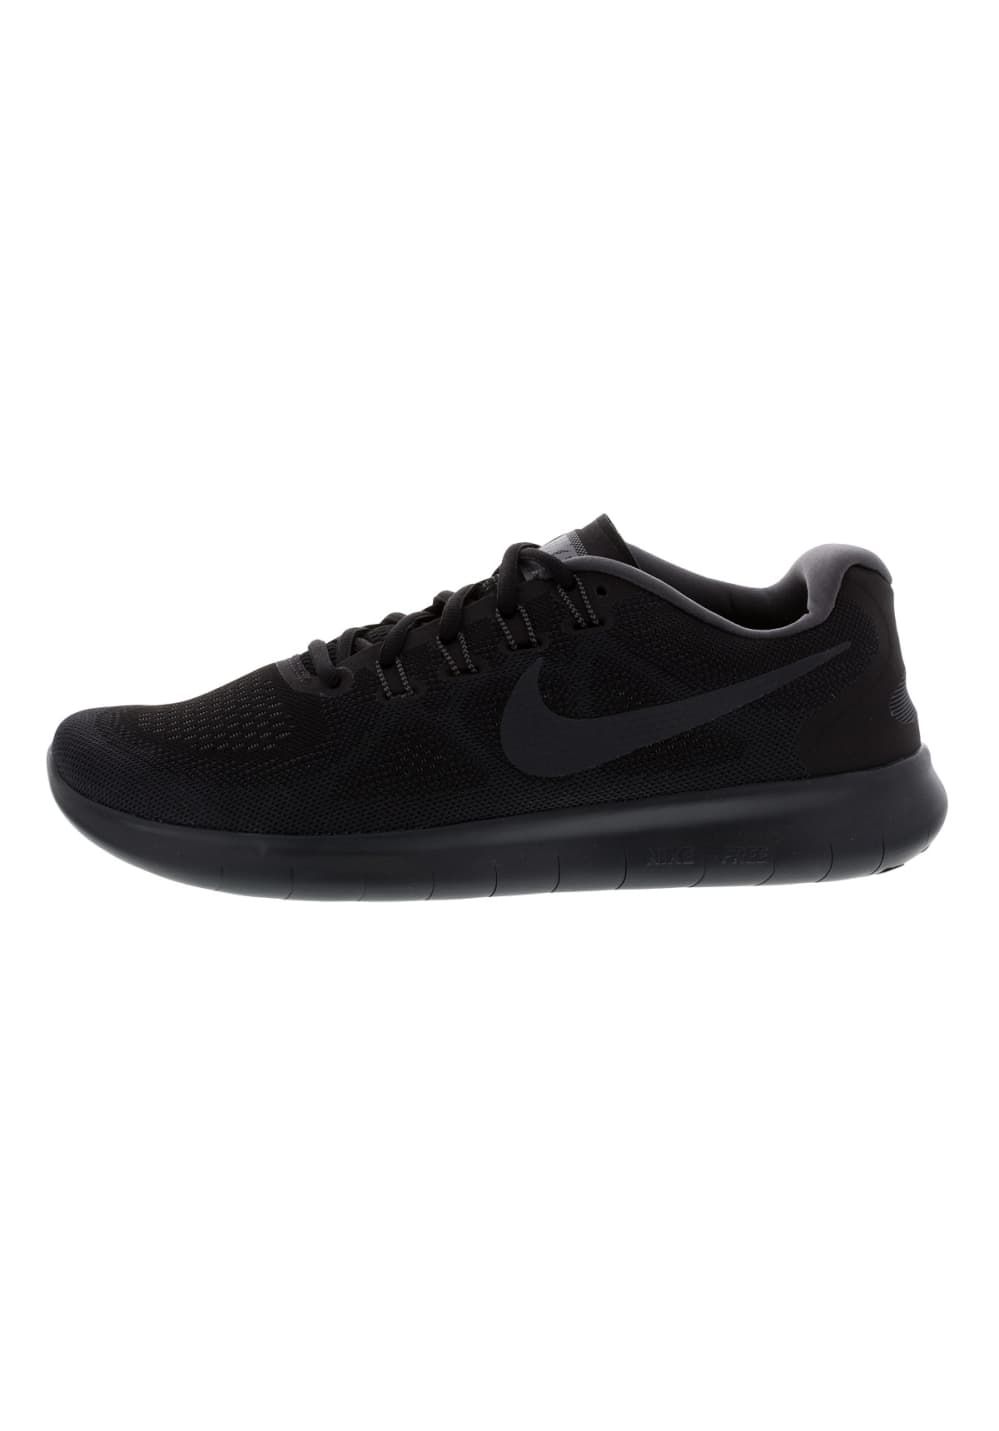 new style a4b7e 934d5 Nike Free RN 2017 - Running shoes for Men - Black